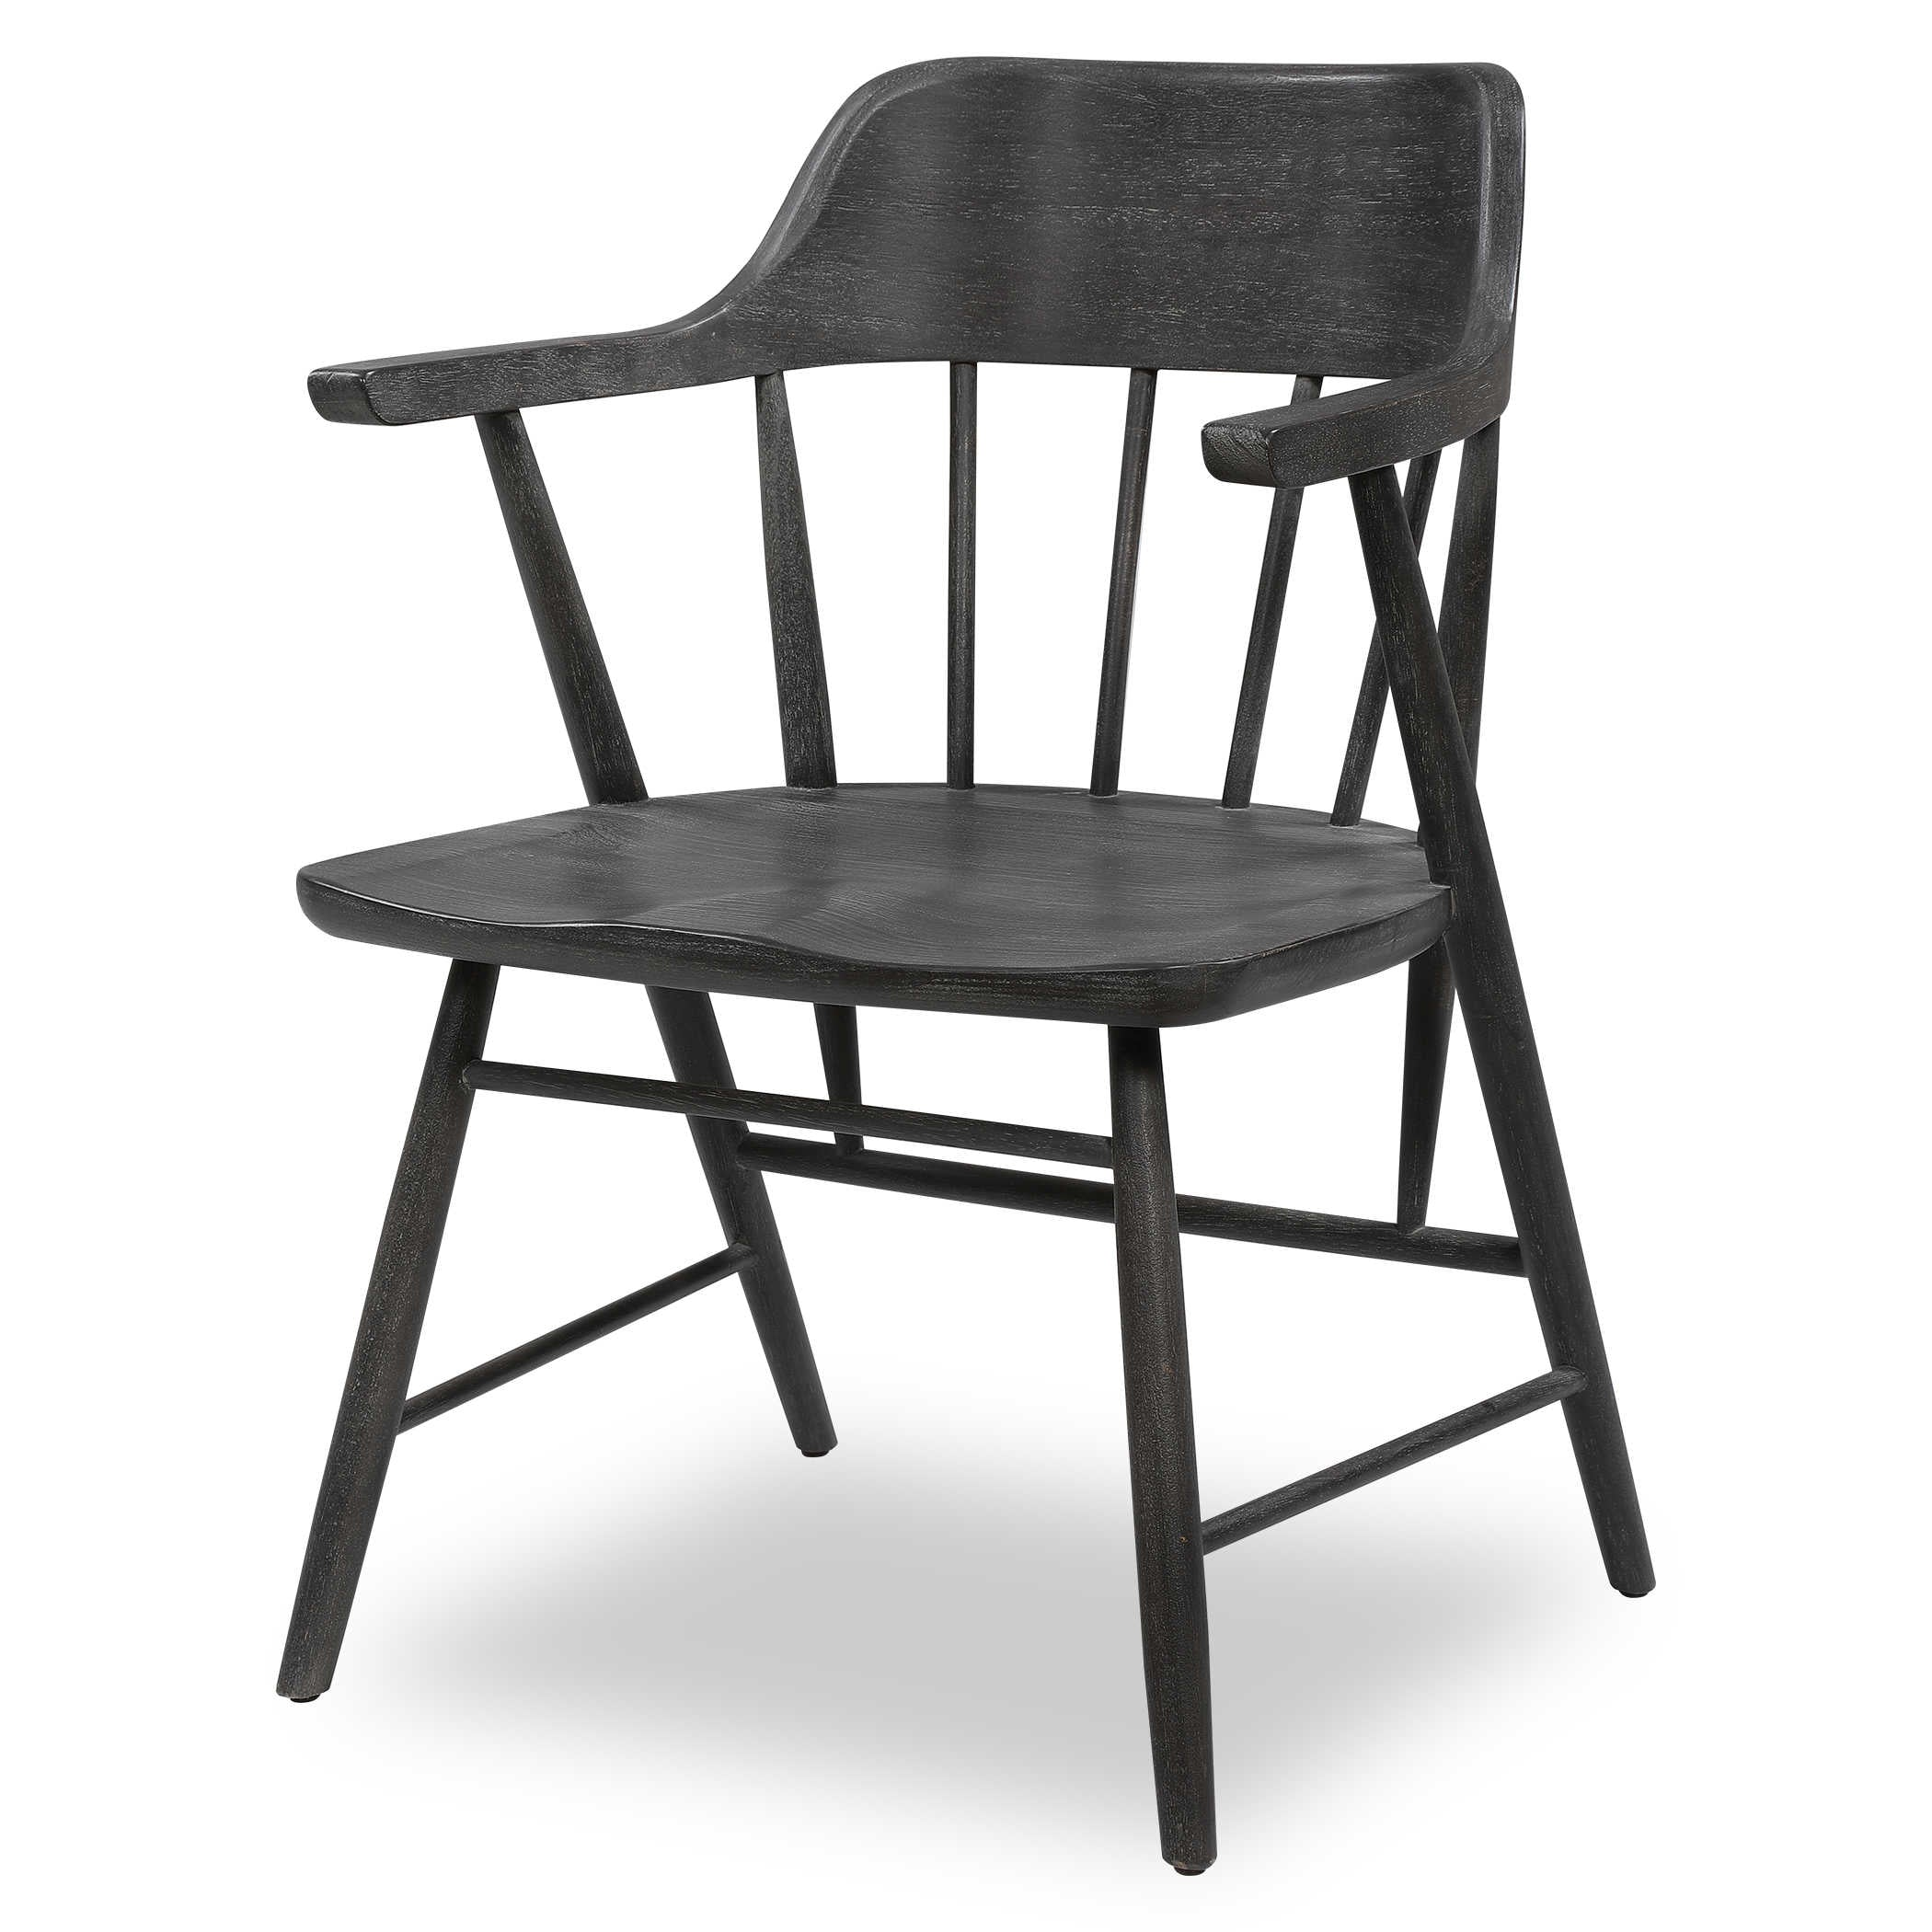 BLACK COLONIAL CHAIR